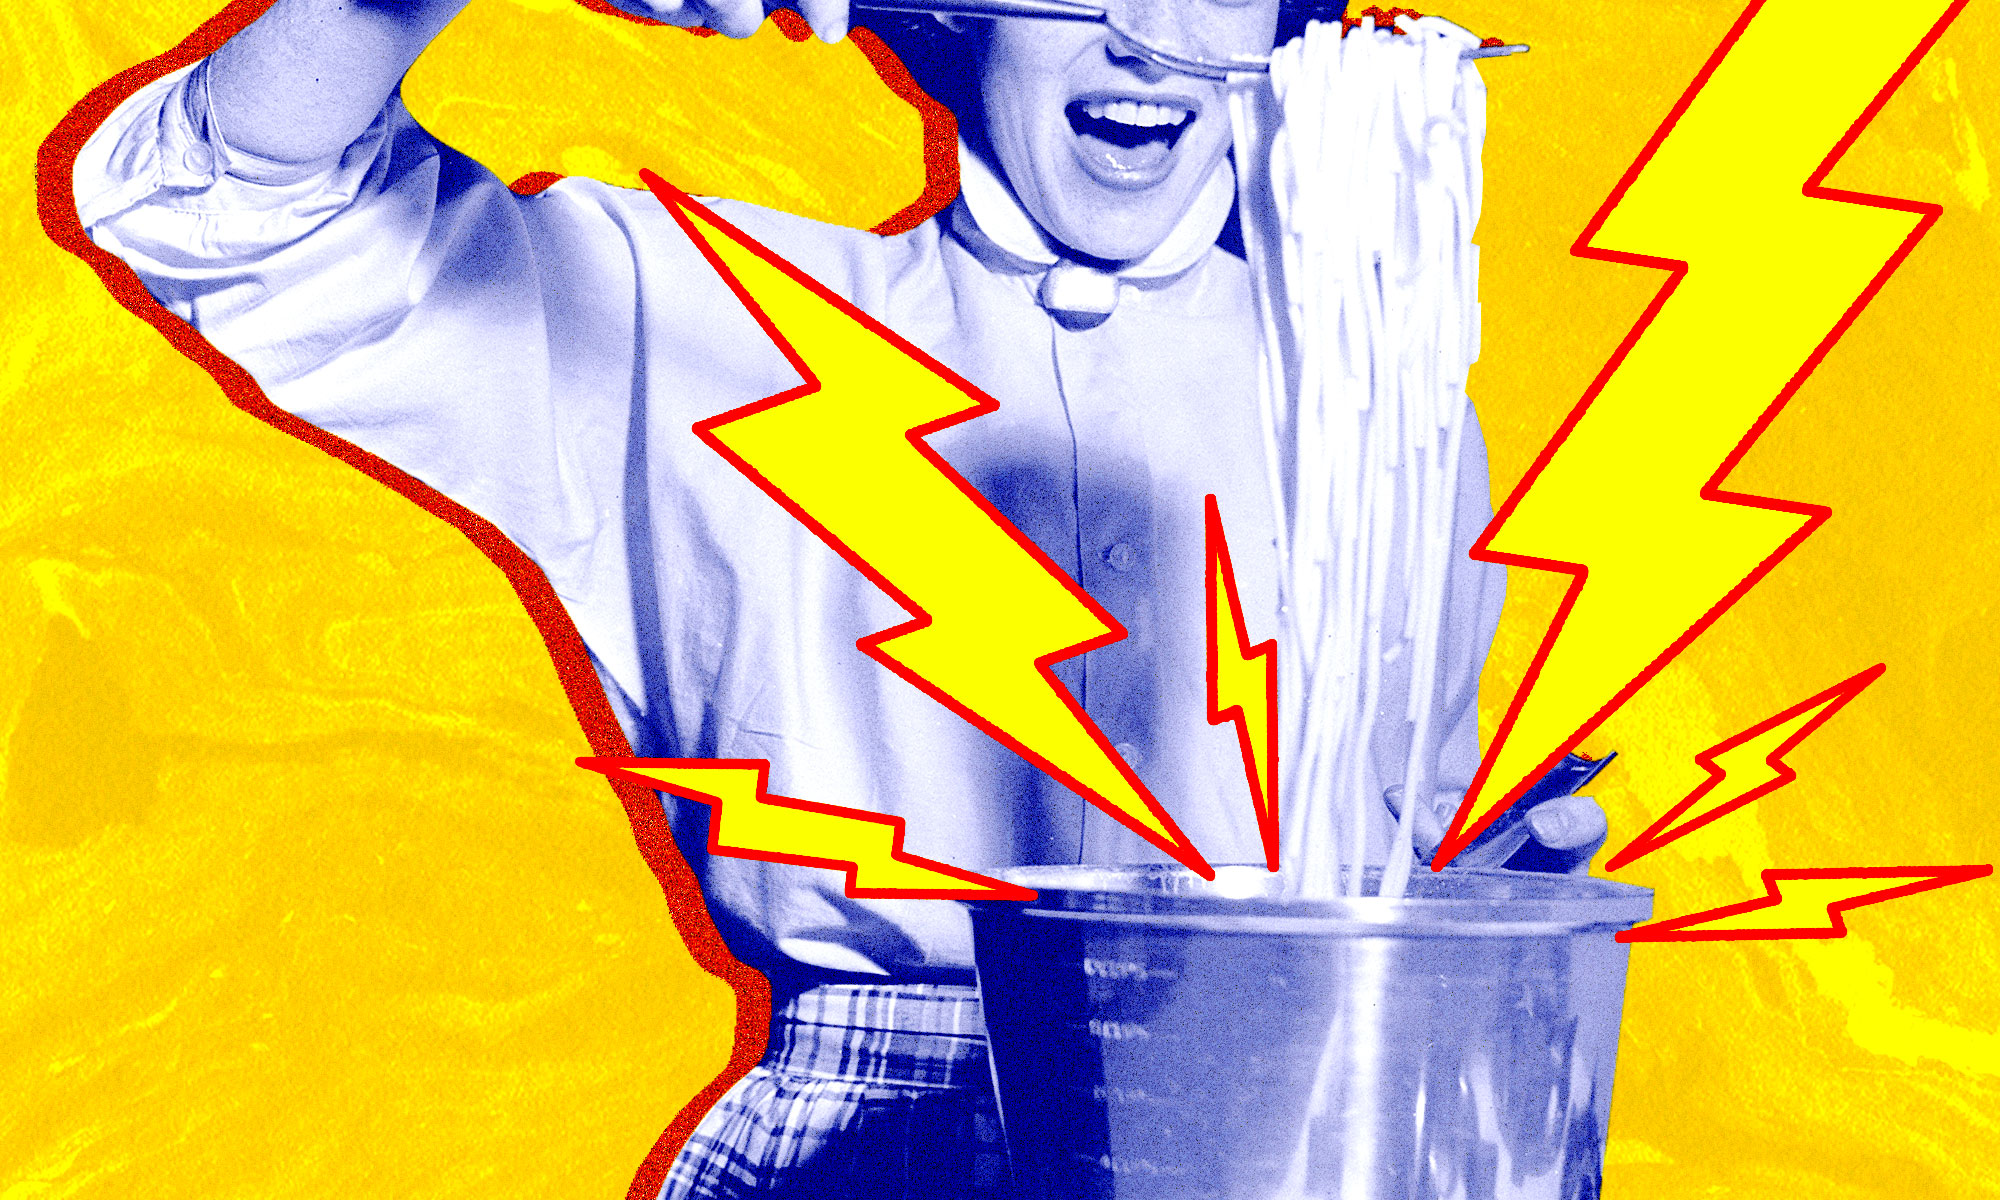 A retro housewife pulls a bunch of spaghetti out of a pot.